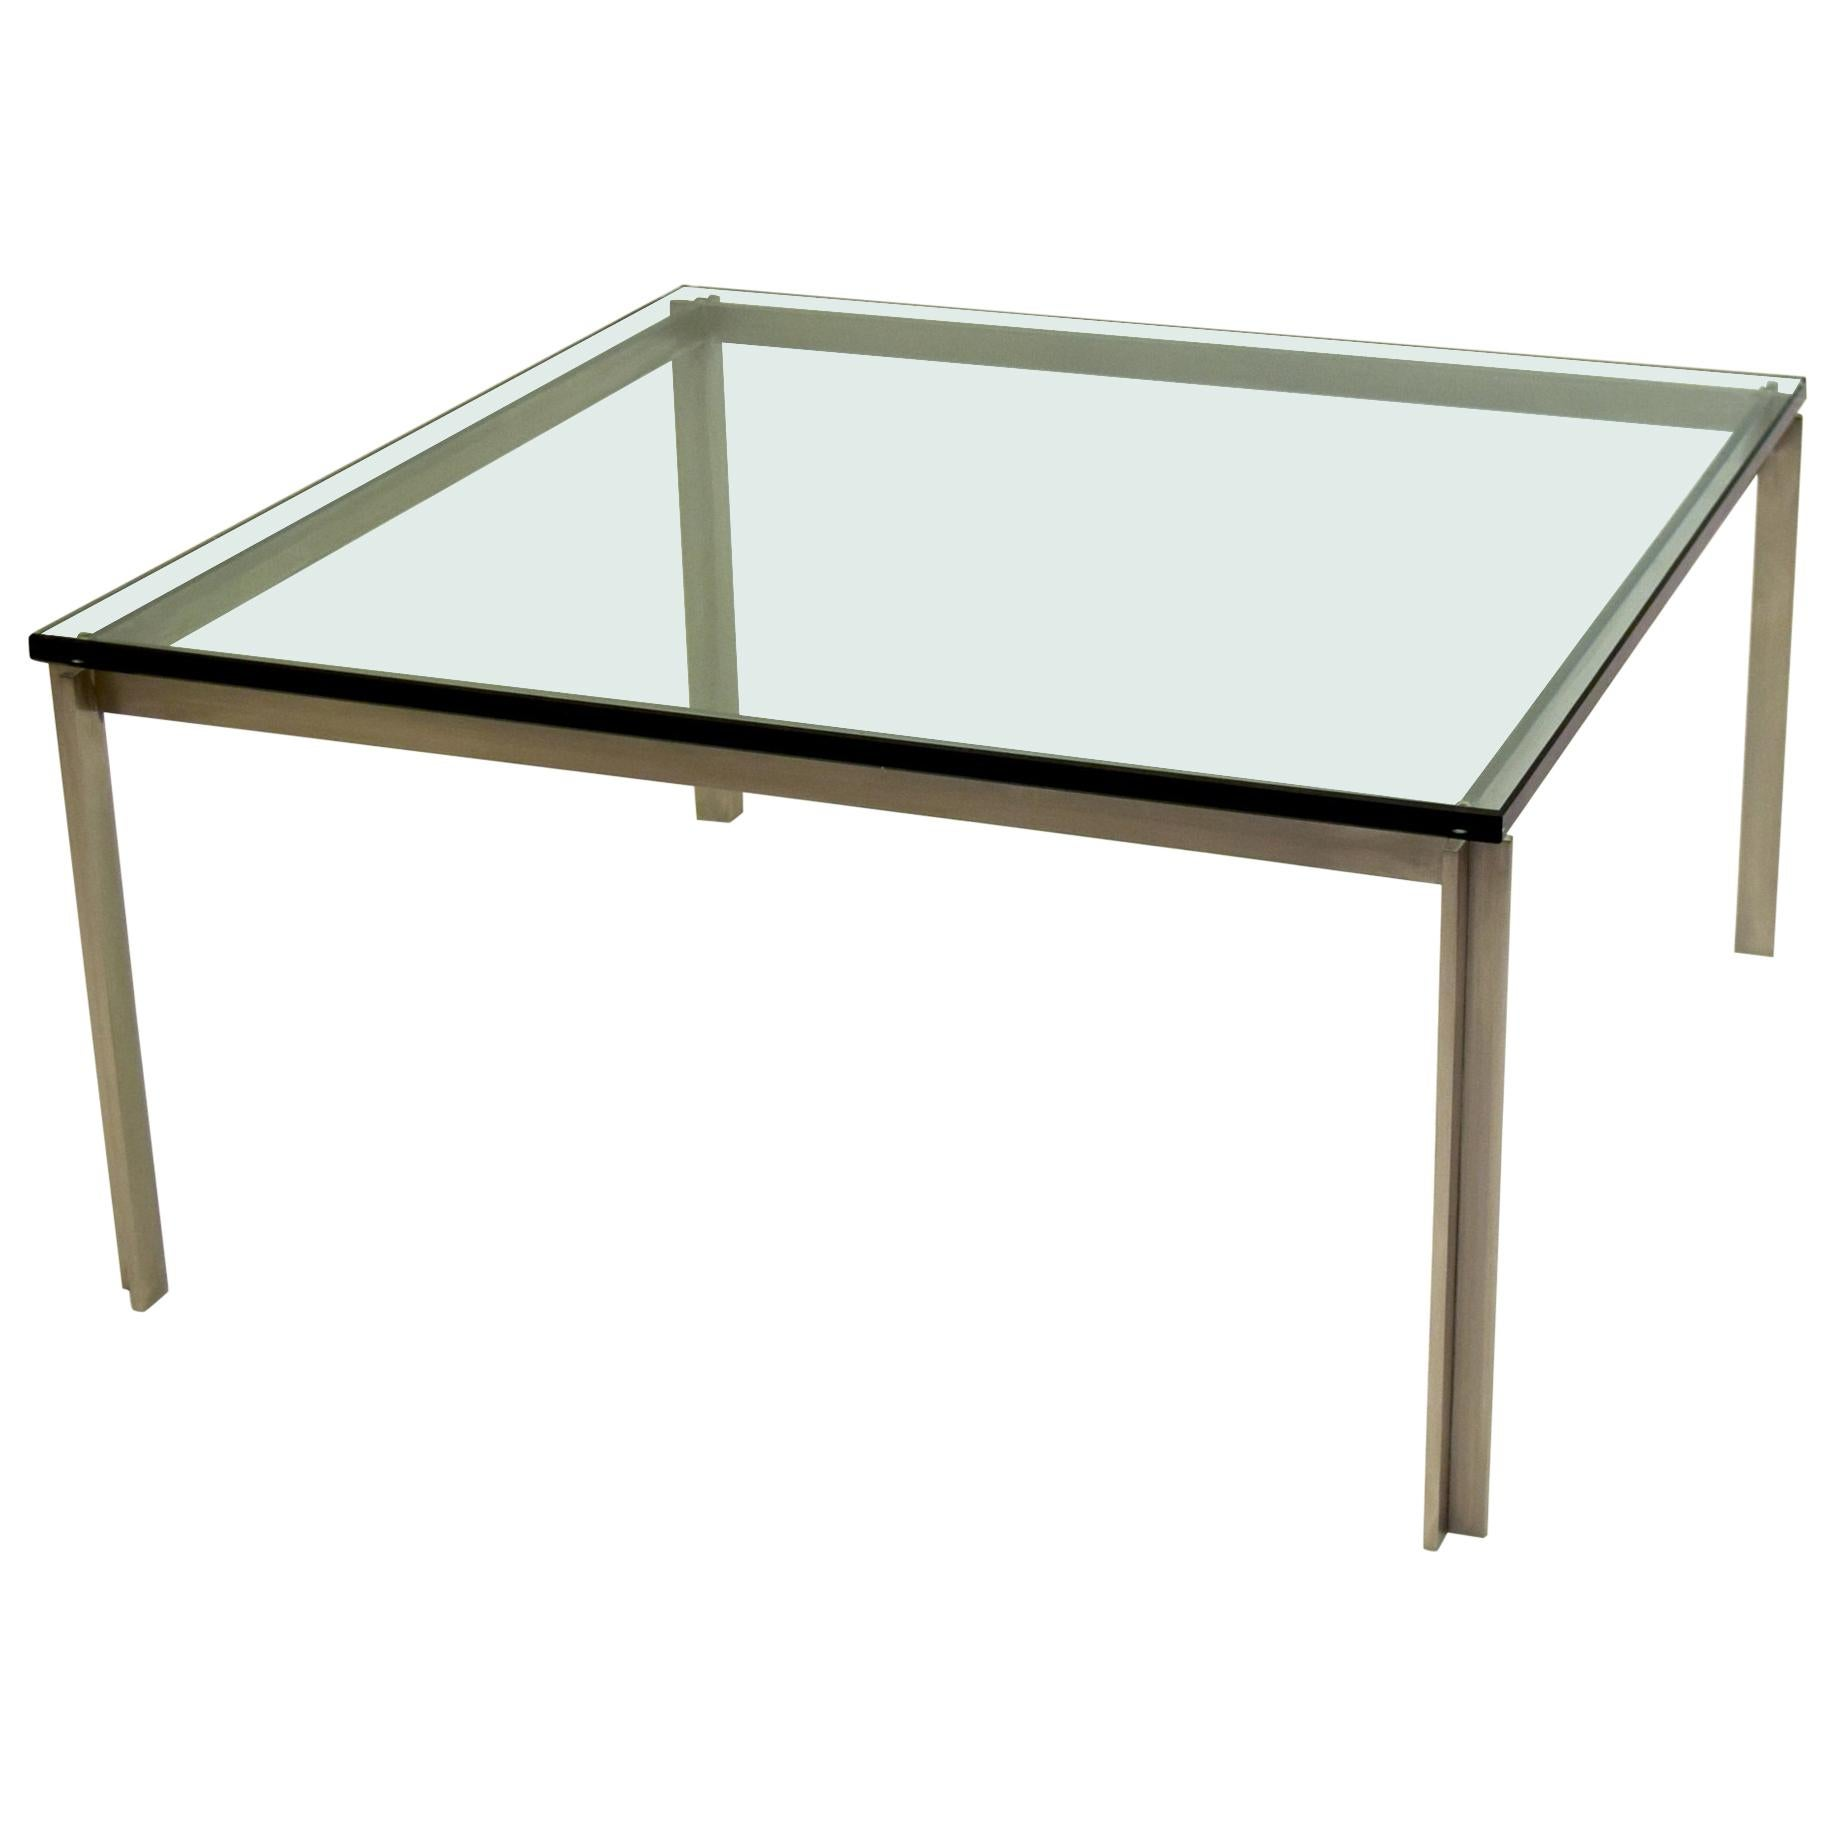 Large Stainless Steel Square Table with Glass